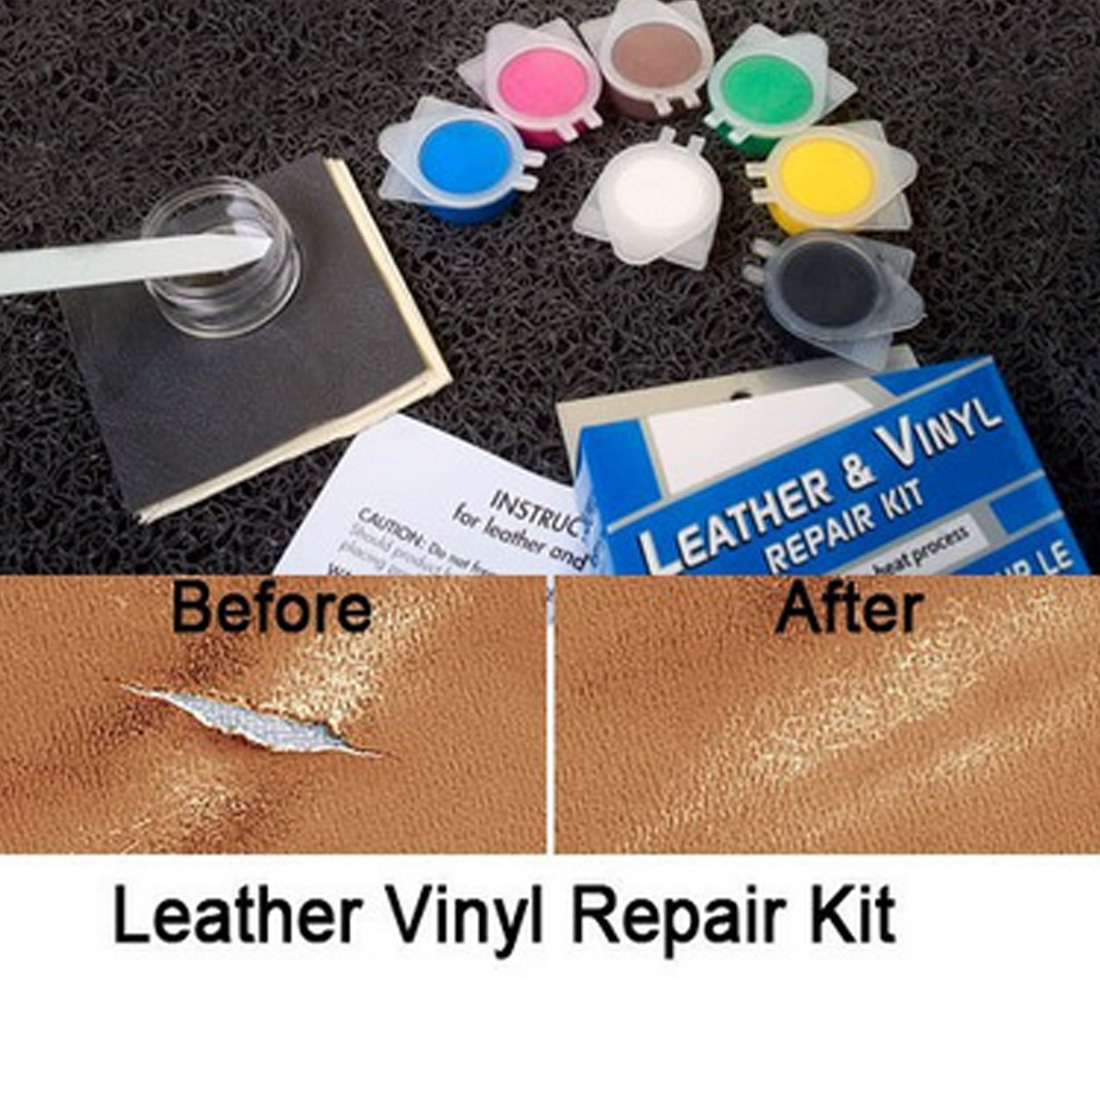 Leather Repair Tool Auto Car Seat Sofa Coats Holes Scratch Cracks Rips No Heat Liquid Leather Vinyl Repair Kit